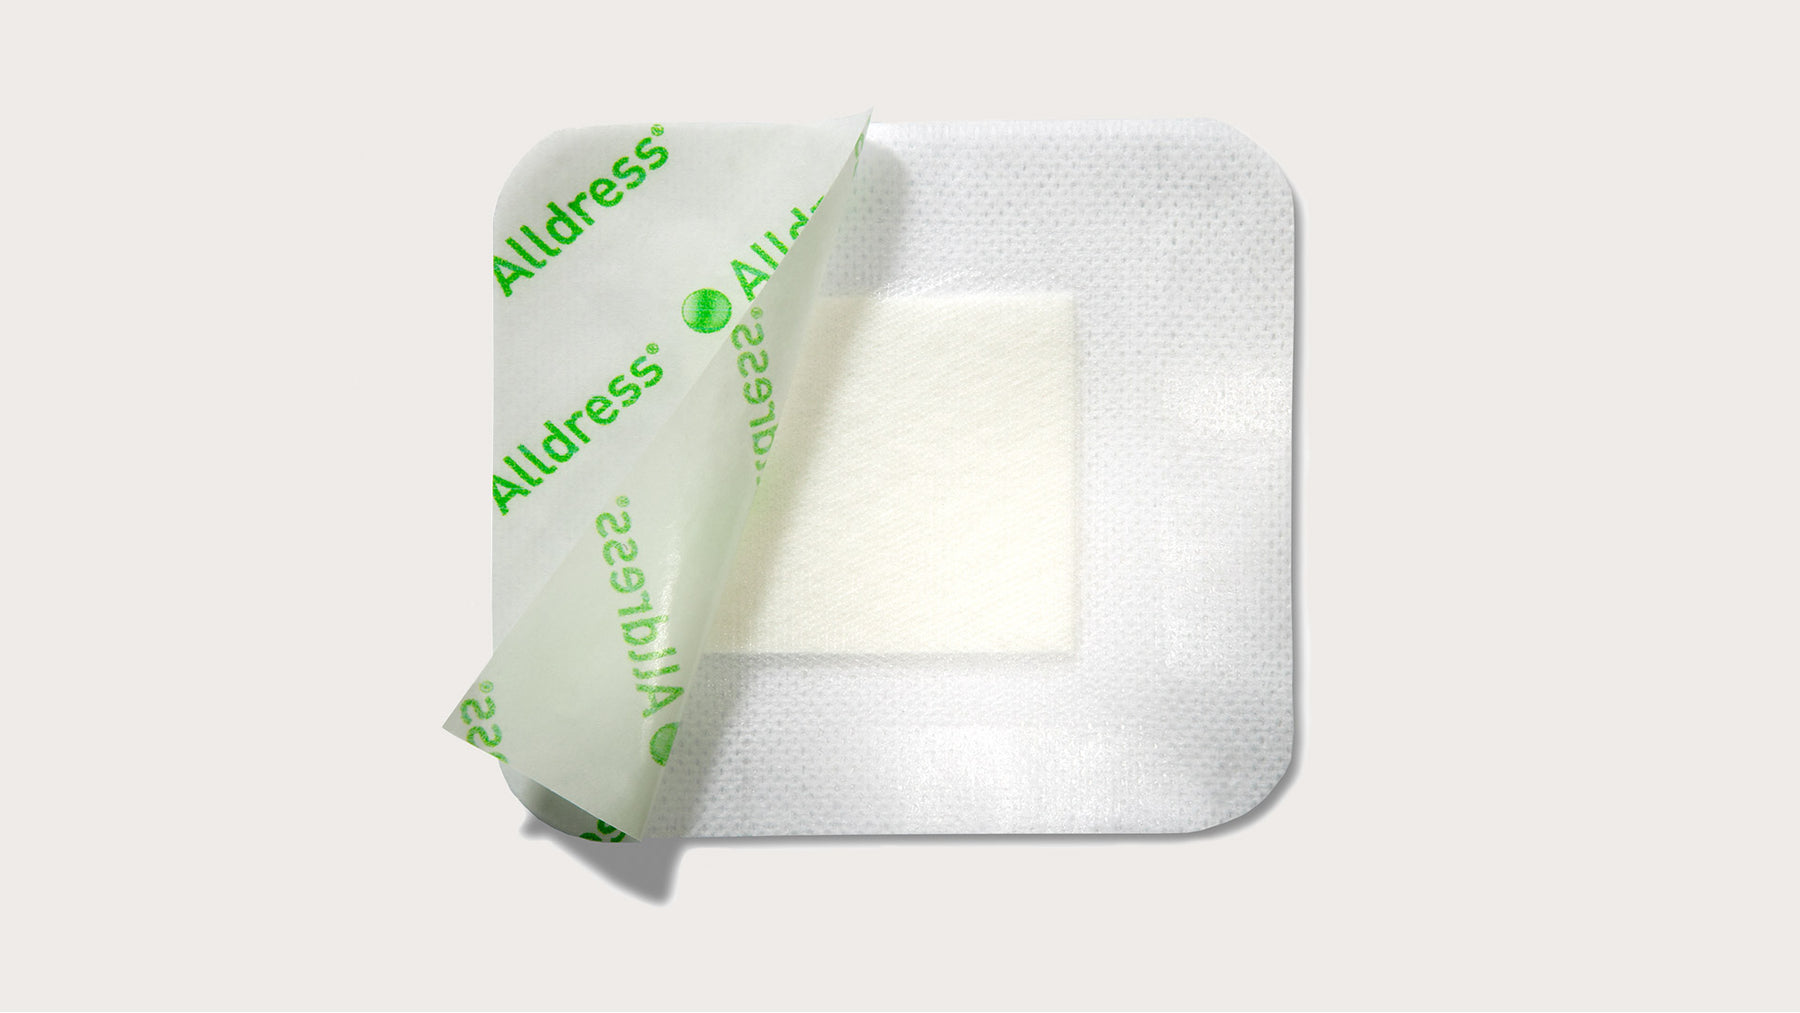 Alldress® Wound Dressings